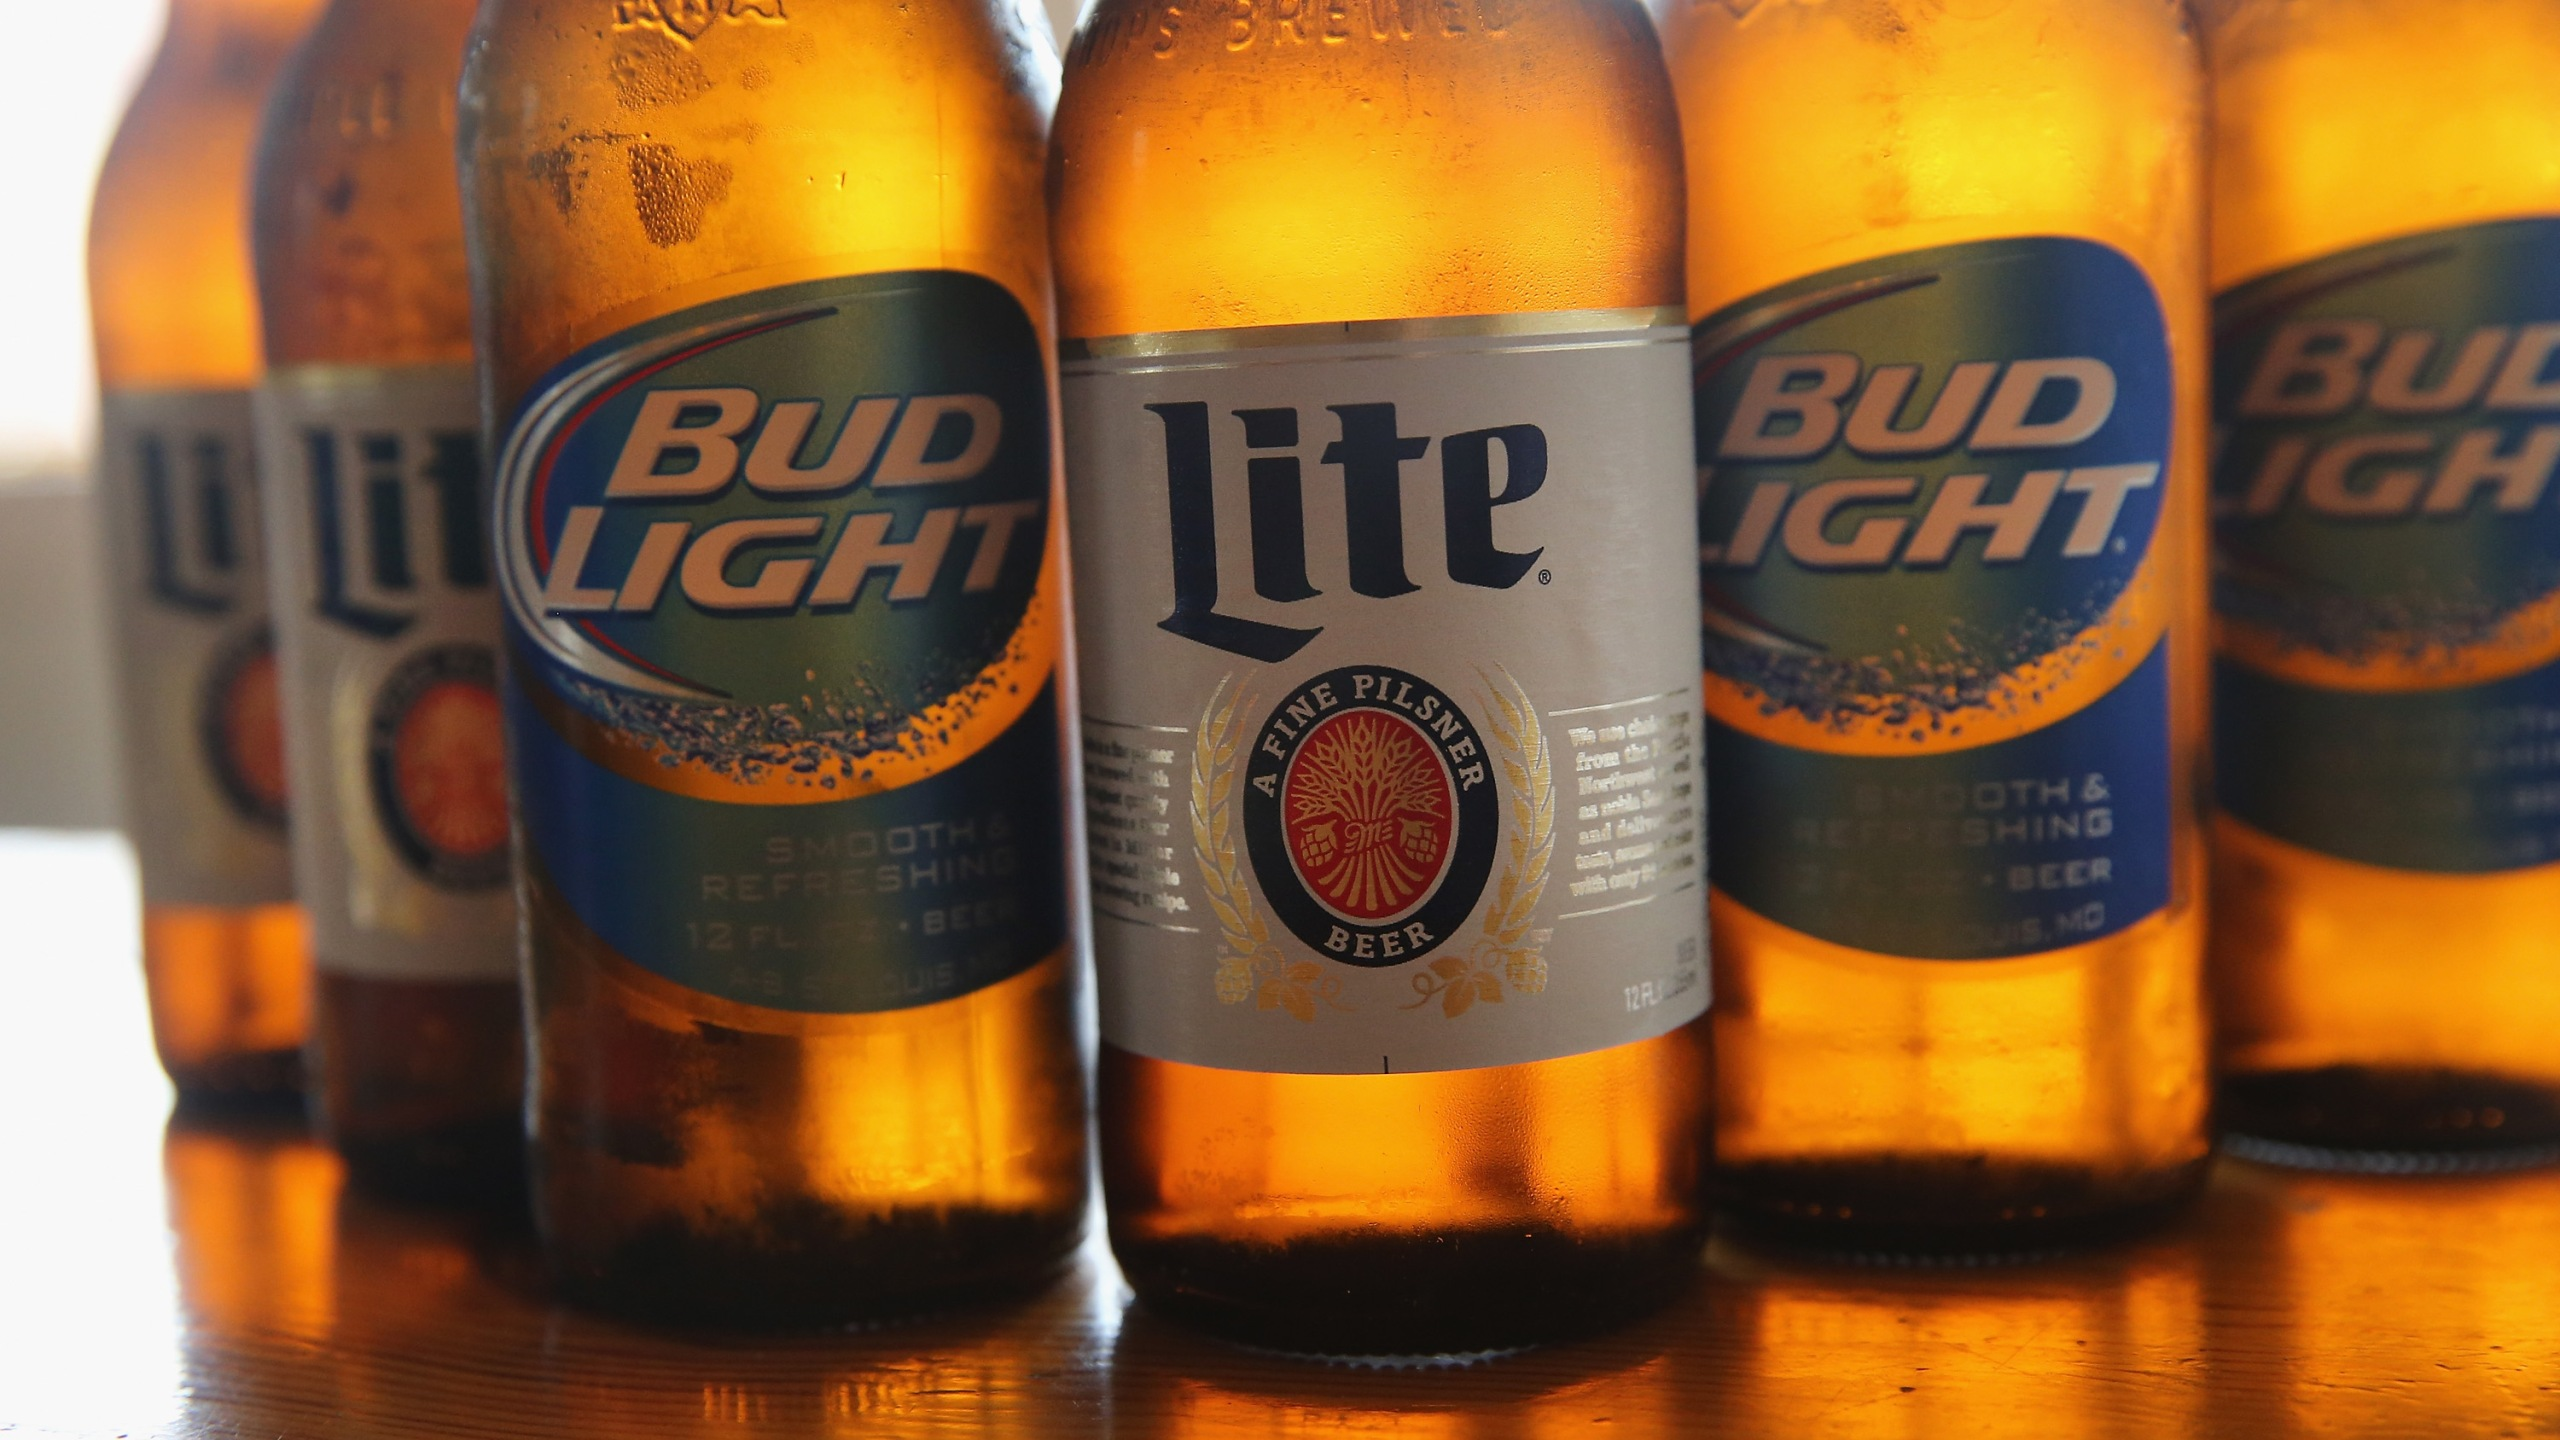 Bud Light and Miller Lite beers are seen in this photo. (Credit: Scott Olson/Getty Images)